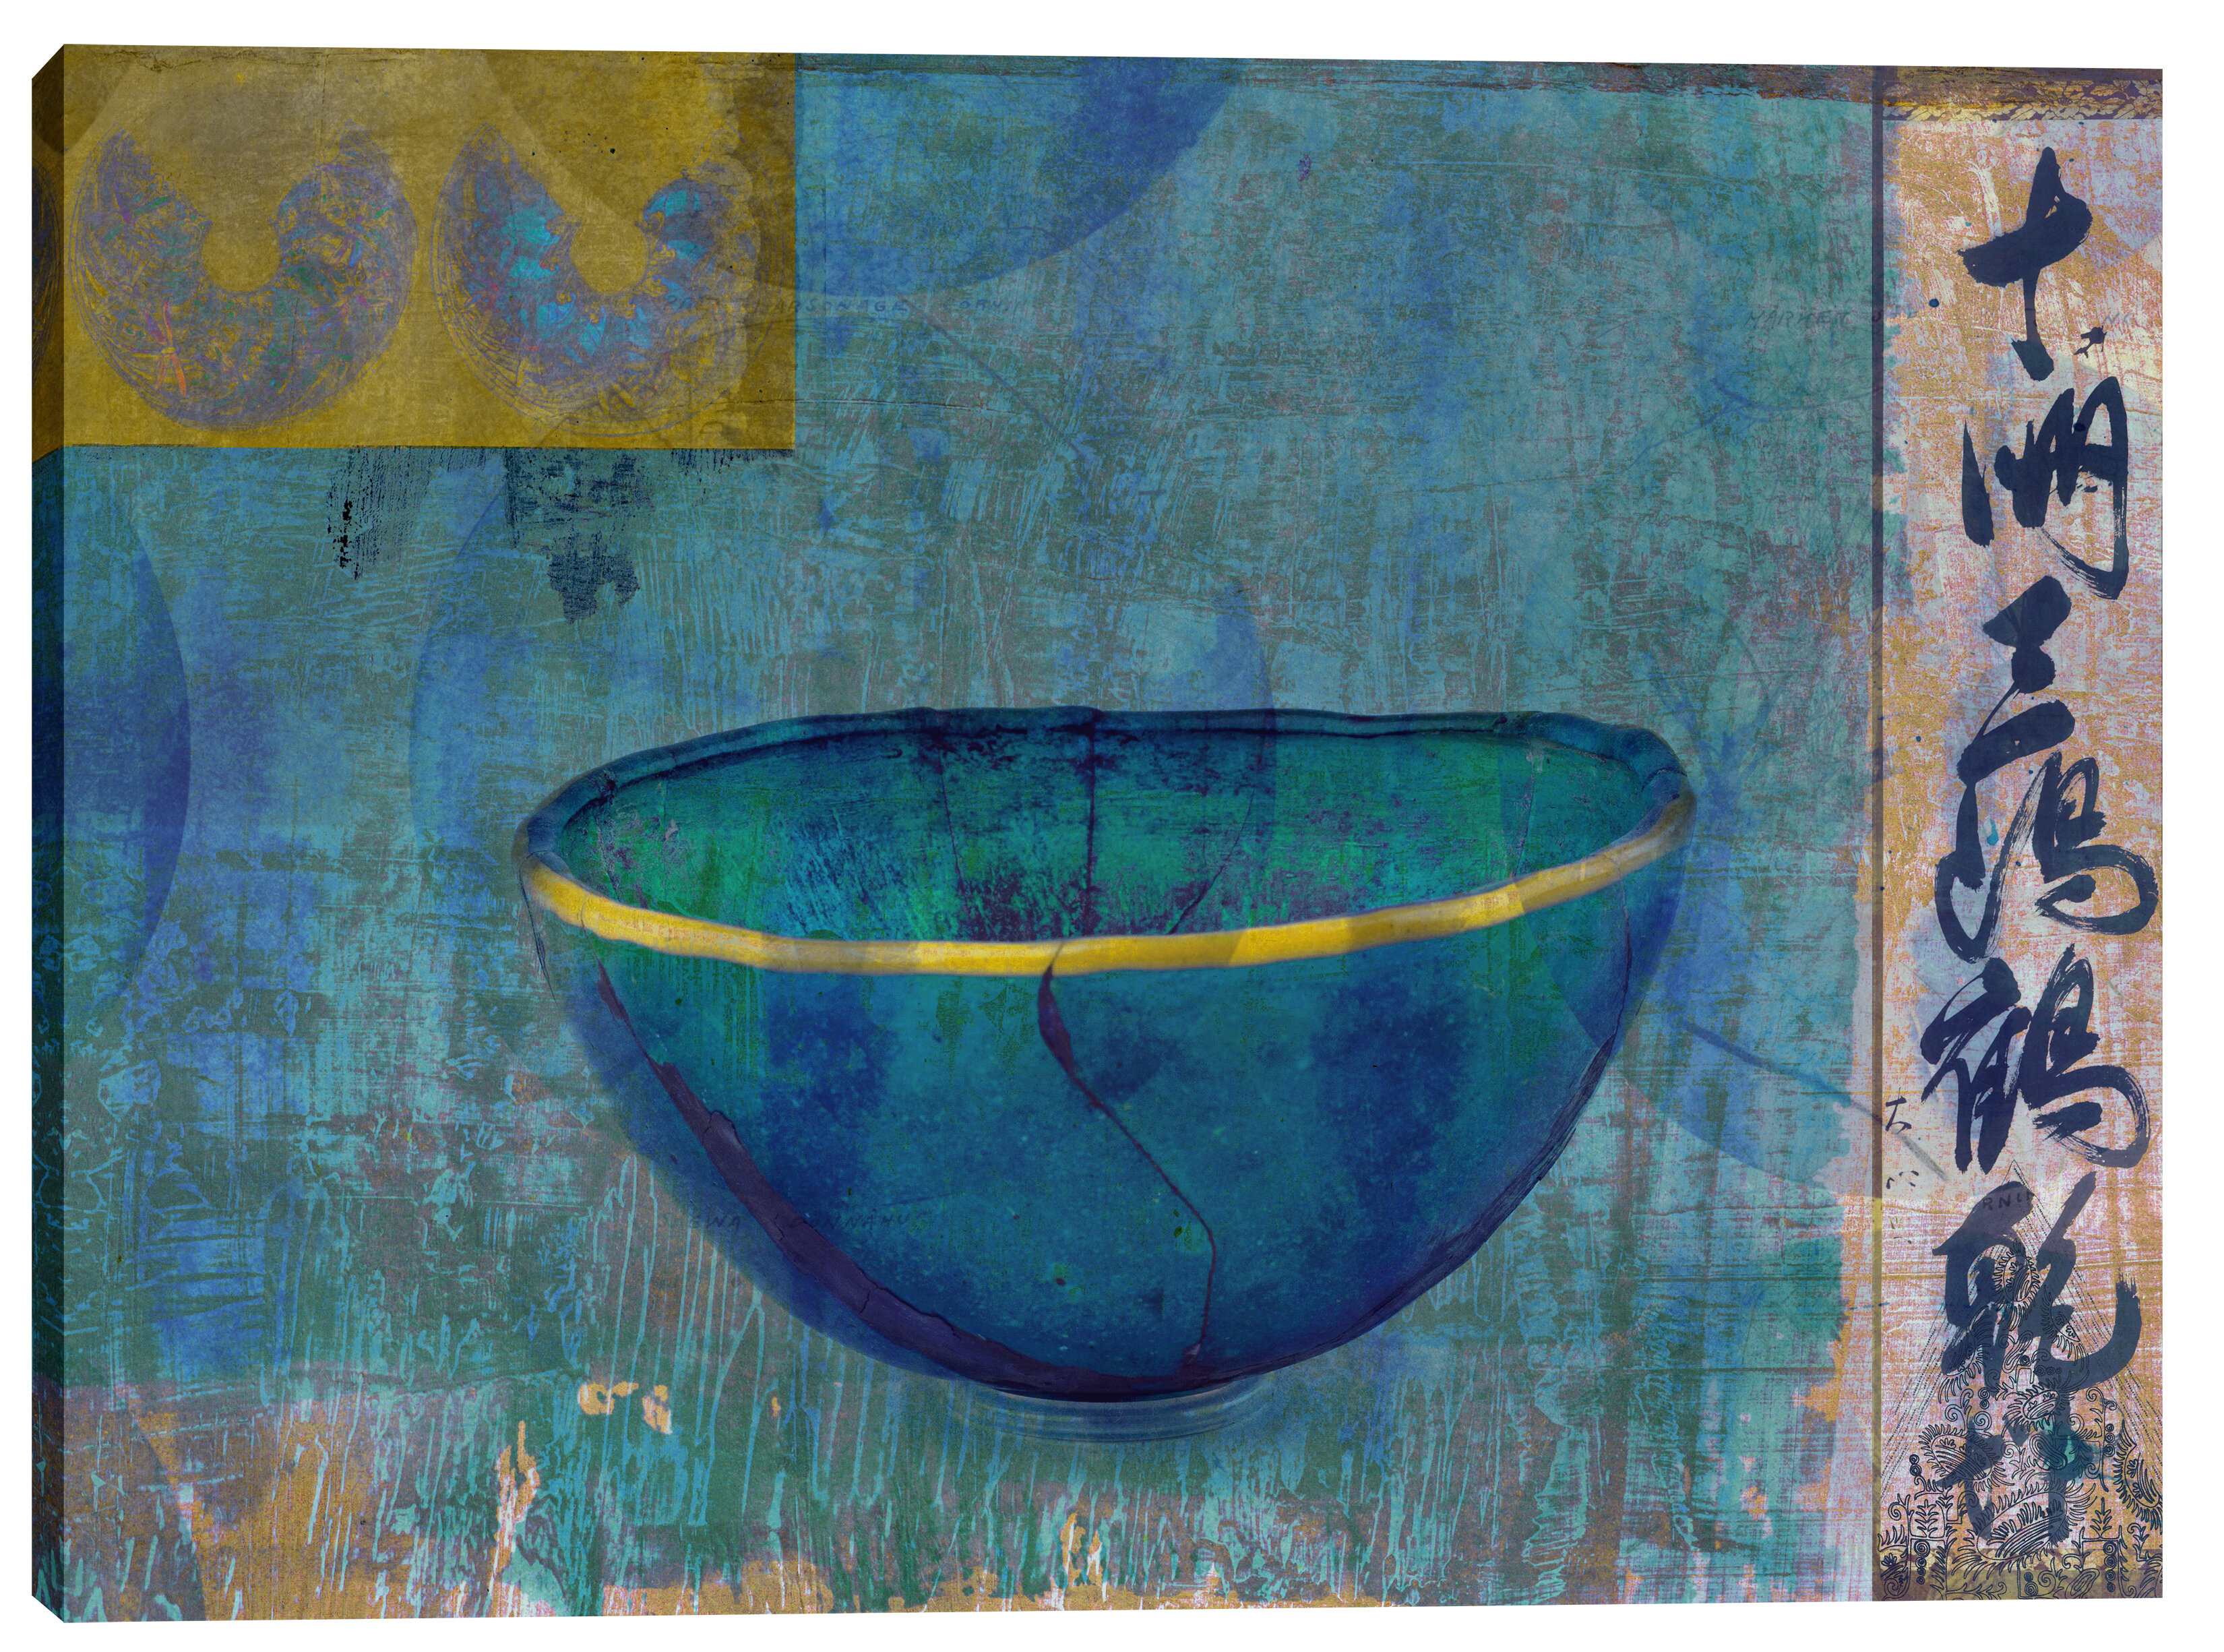 Epic Graffiti Blue Bowl By Elena Ray Graphic Art On Canvas Wayfair